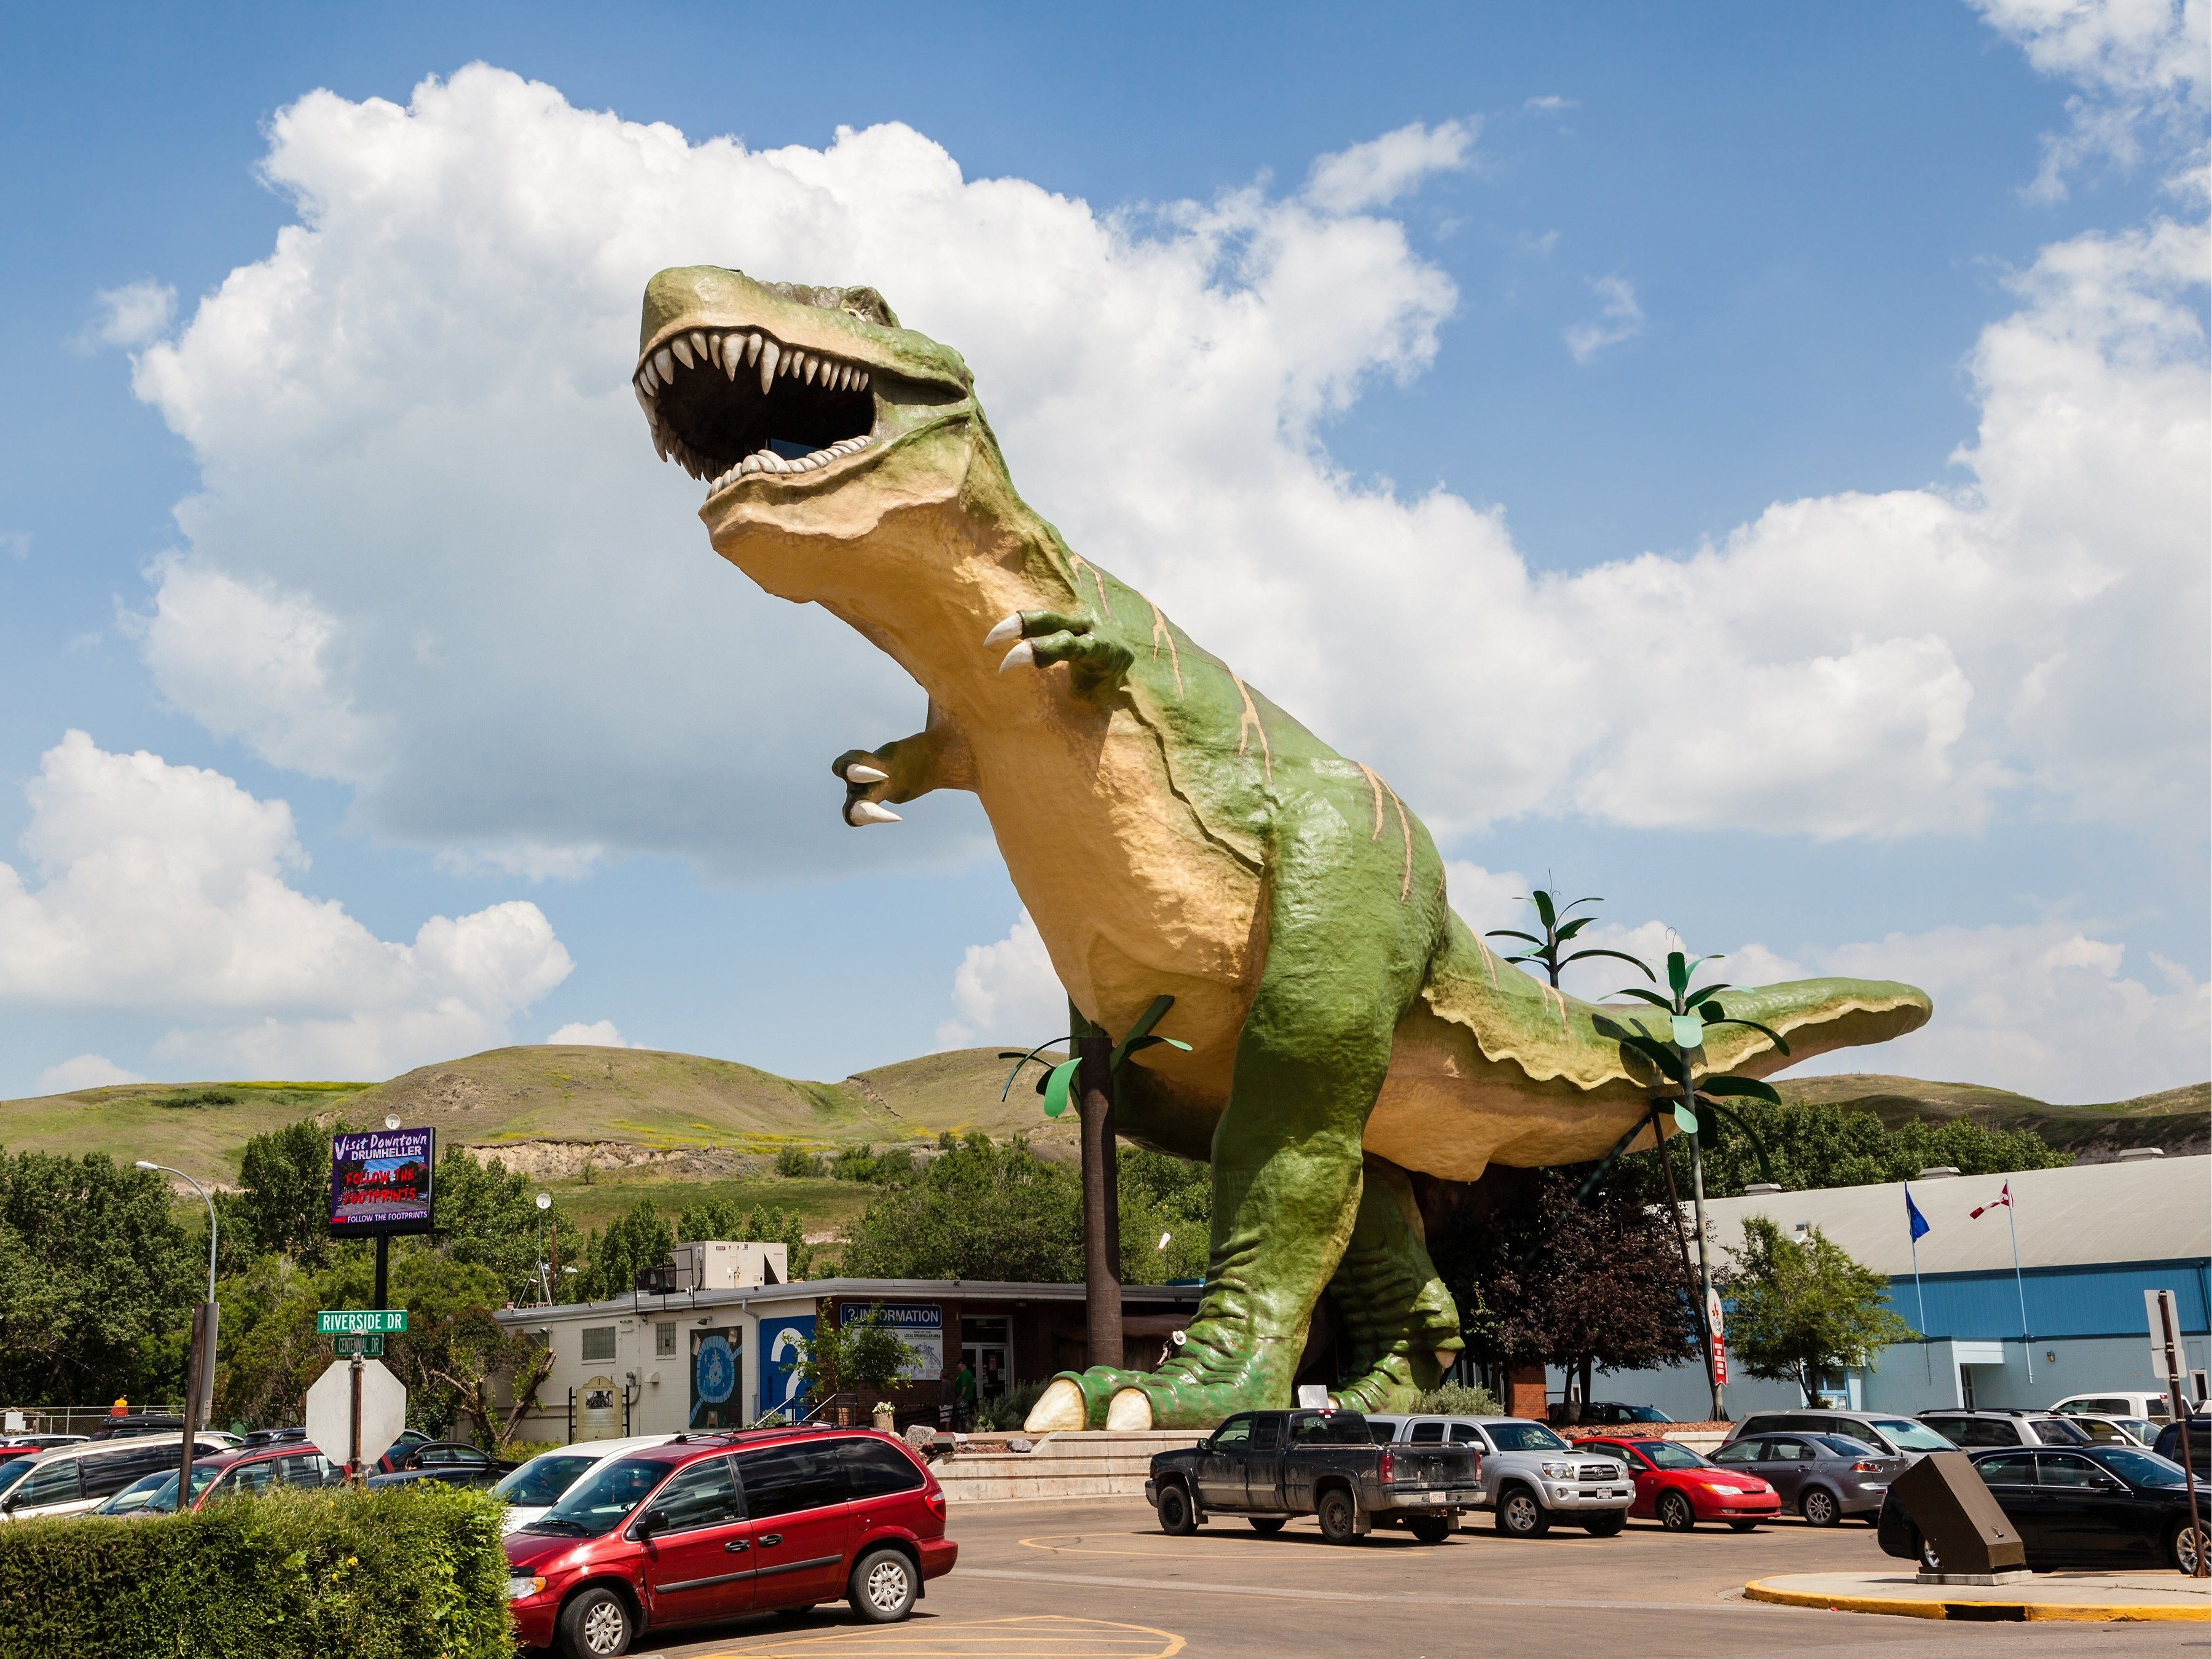 2. World's Largest Dinosaur, Drumheller, Alta.